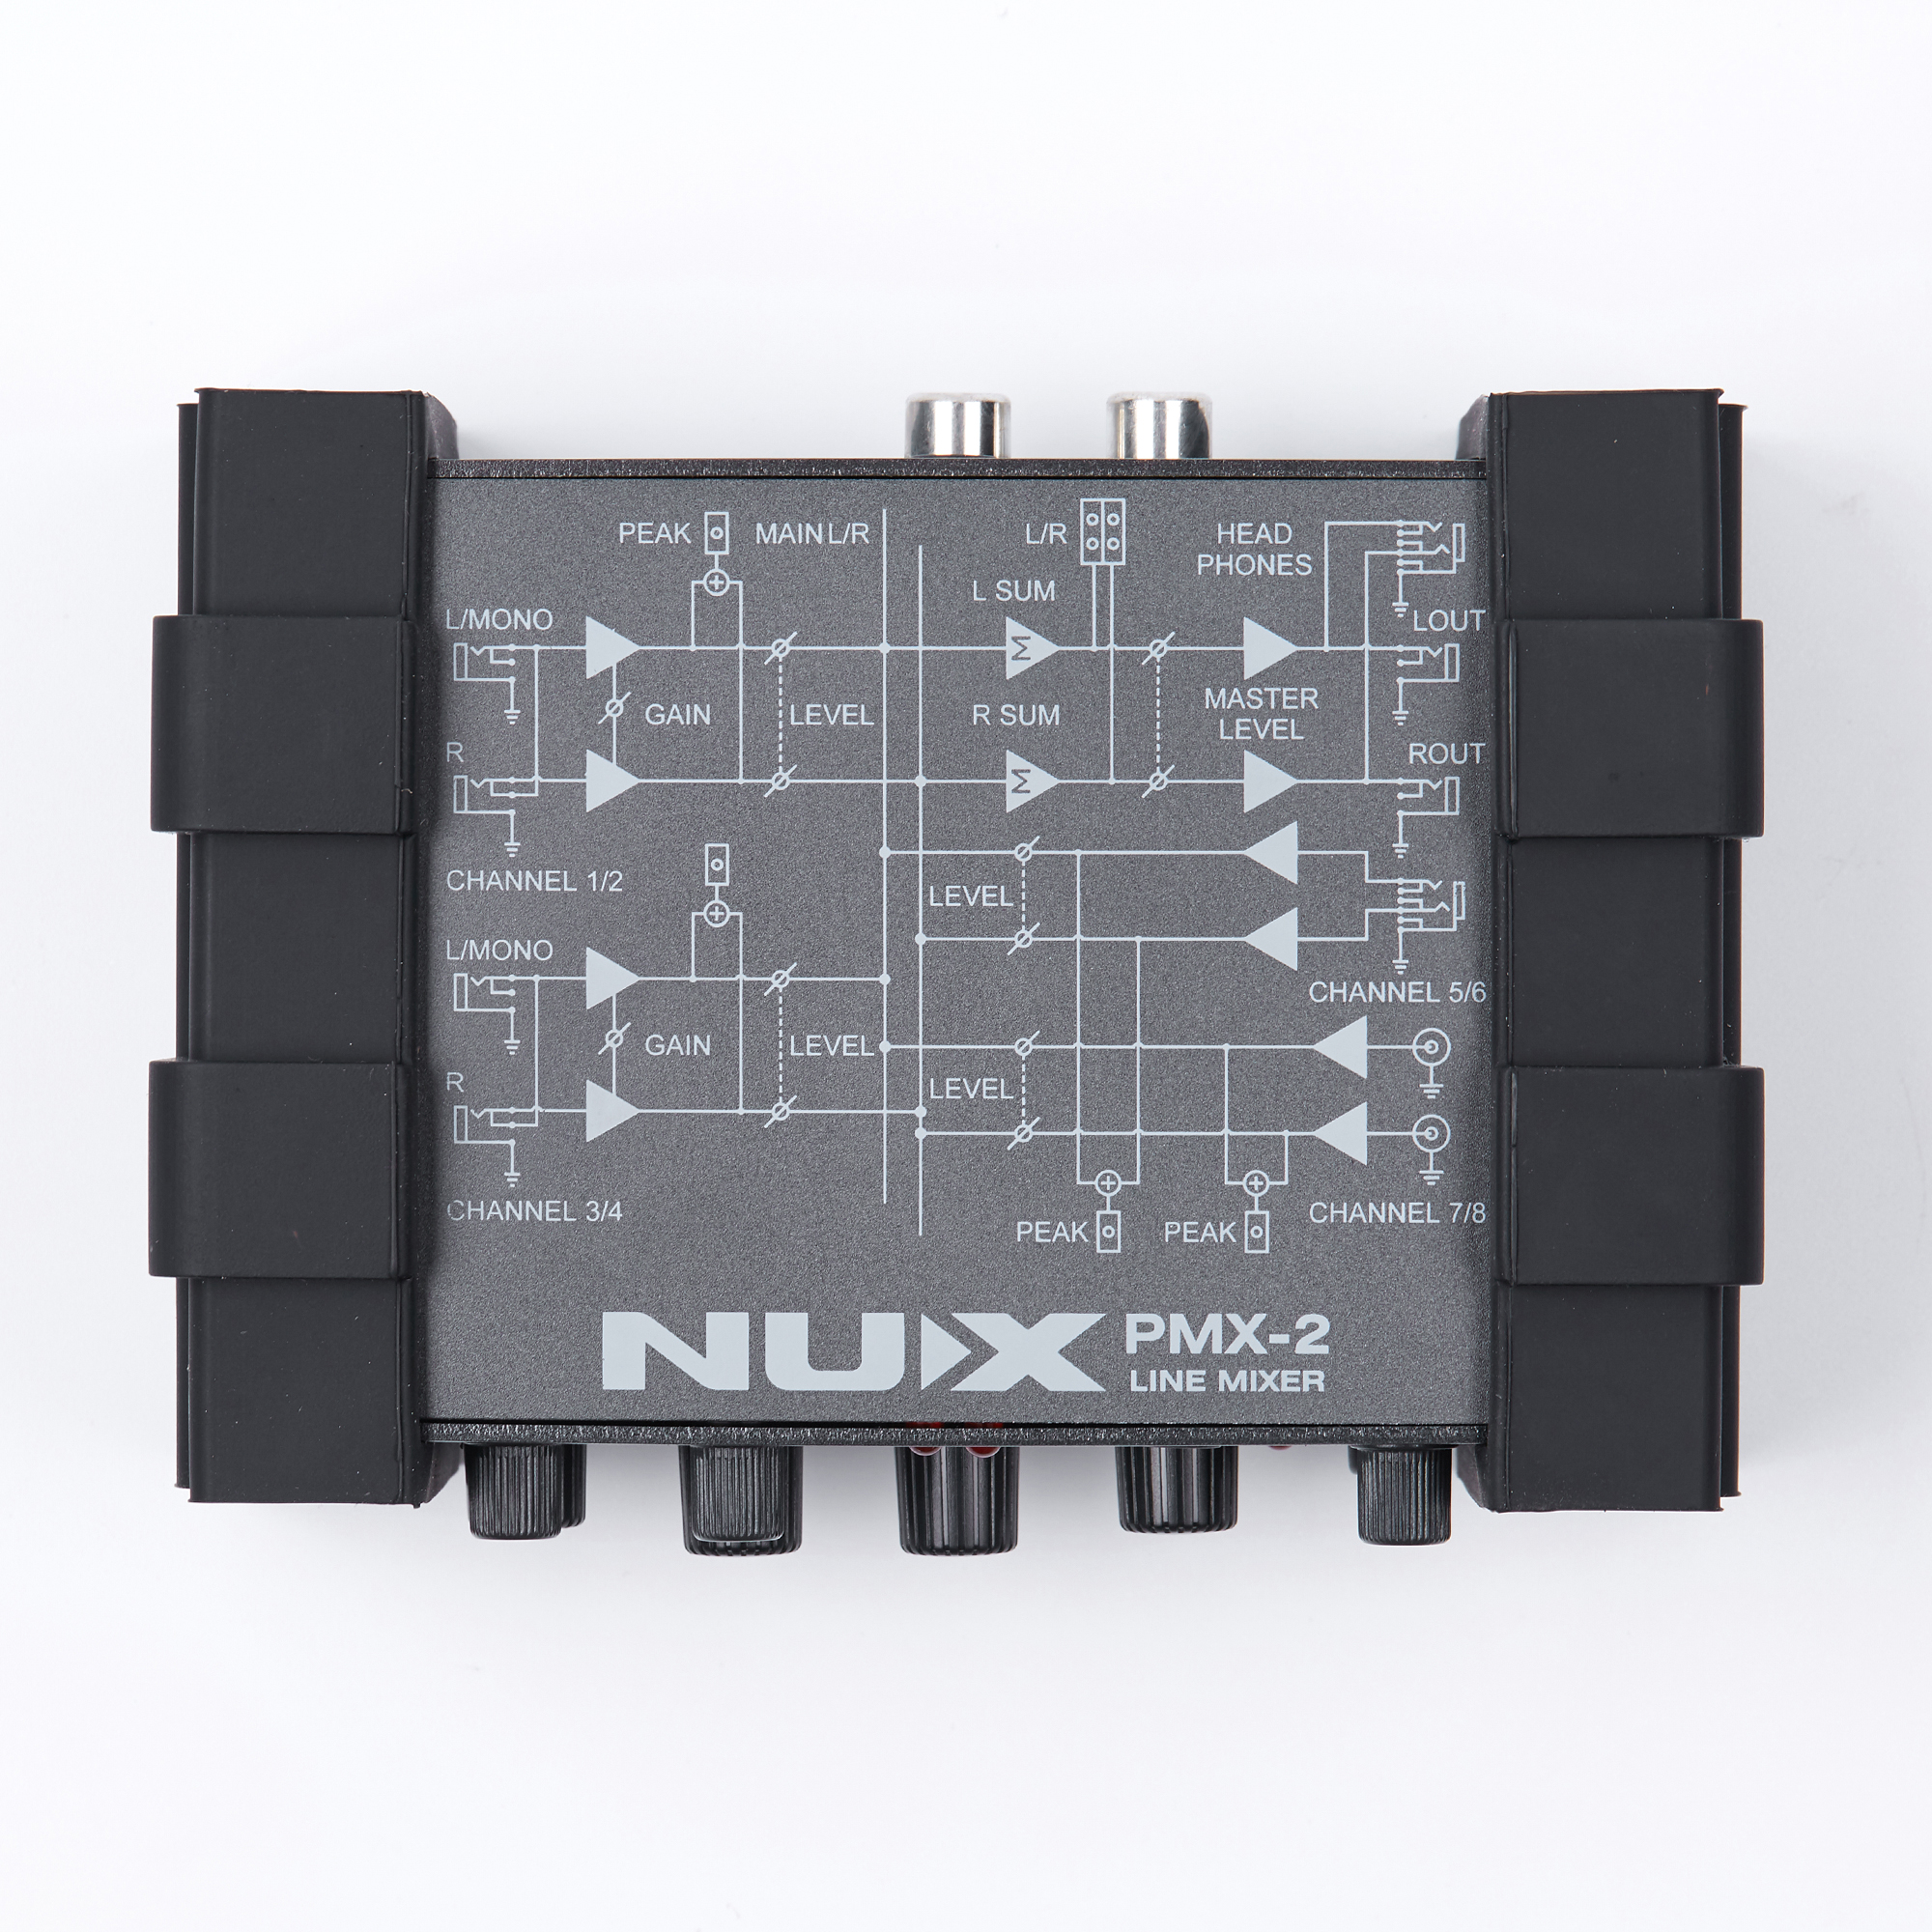 Gain Control 8 Inputs and 2 Outputs NUX PMX-2 Multi-Channel Mini Mixer 30 Musical Instruments Accessories for Guitar Bass Player сименс siemens компактный выключатель 16a 1p n дважды на входе 5sj30167cr